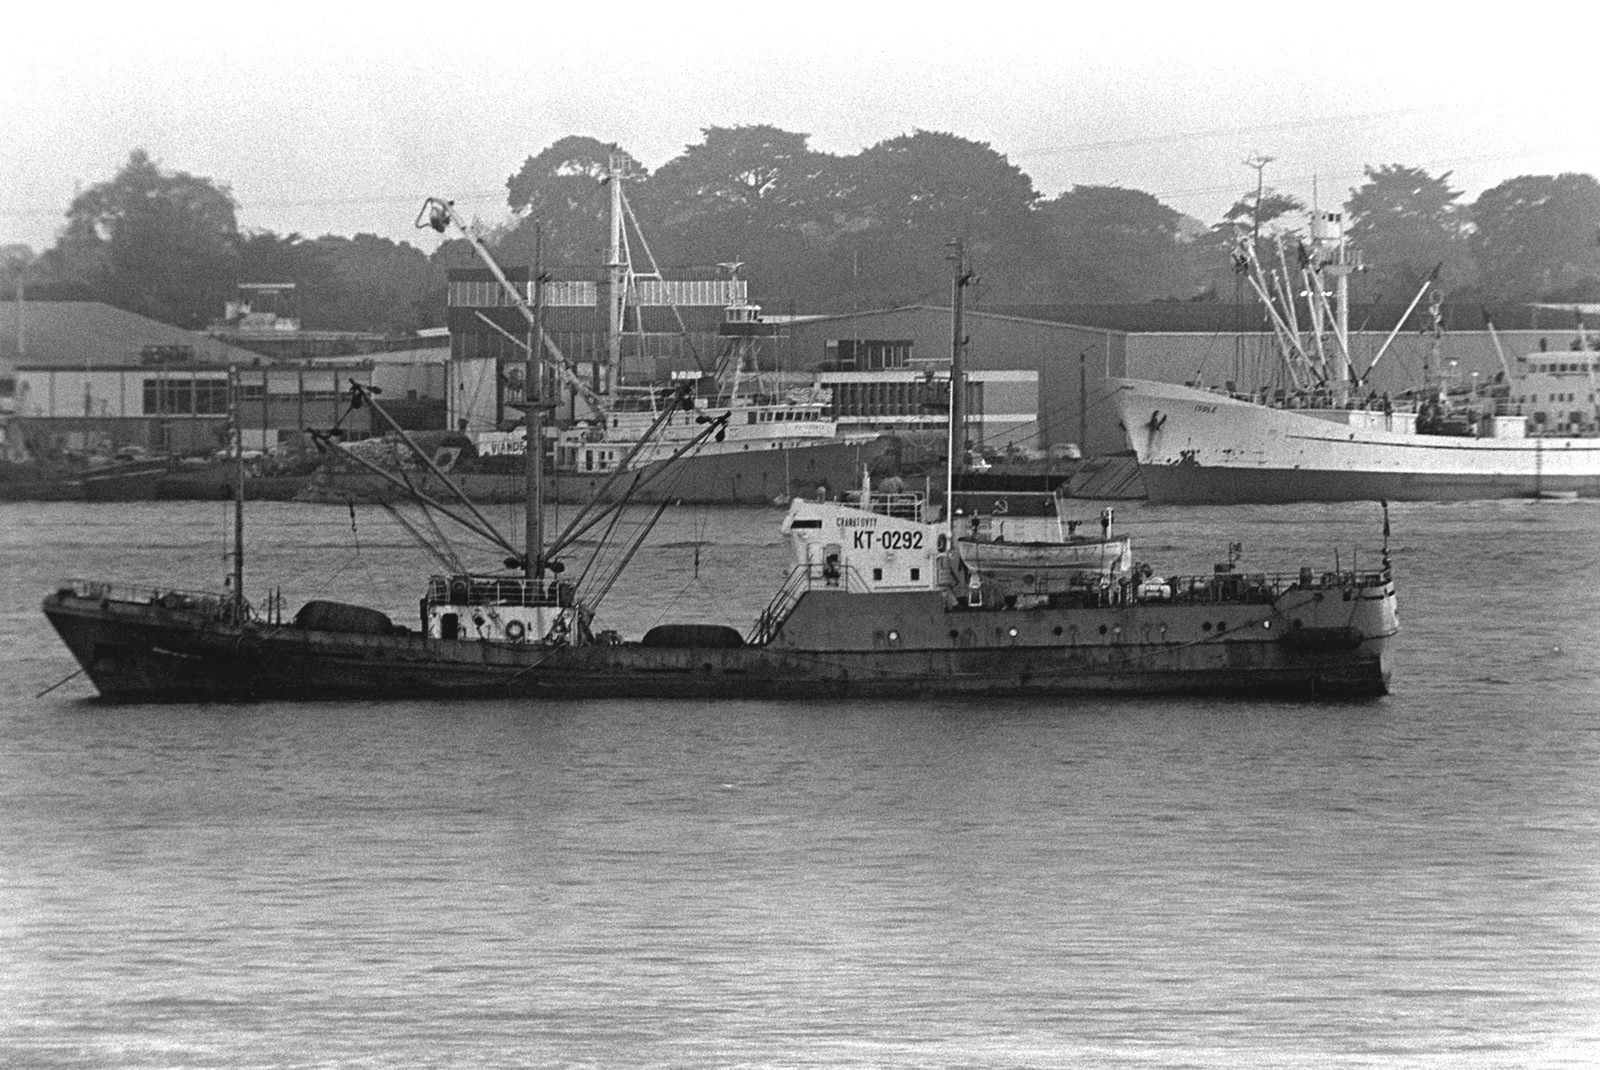 A port beam view of a Soviet trawler anchored offshore during exercise Unitas XX